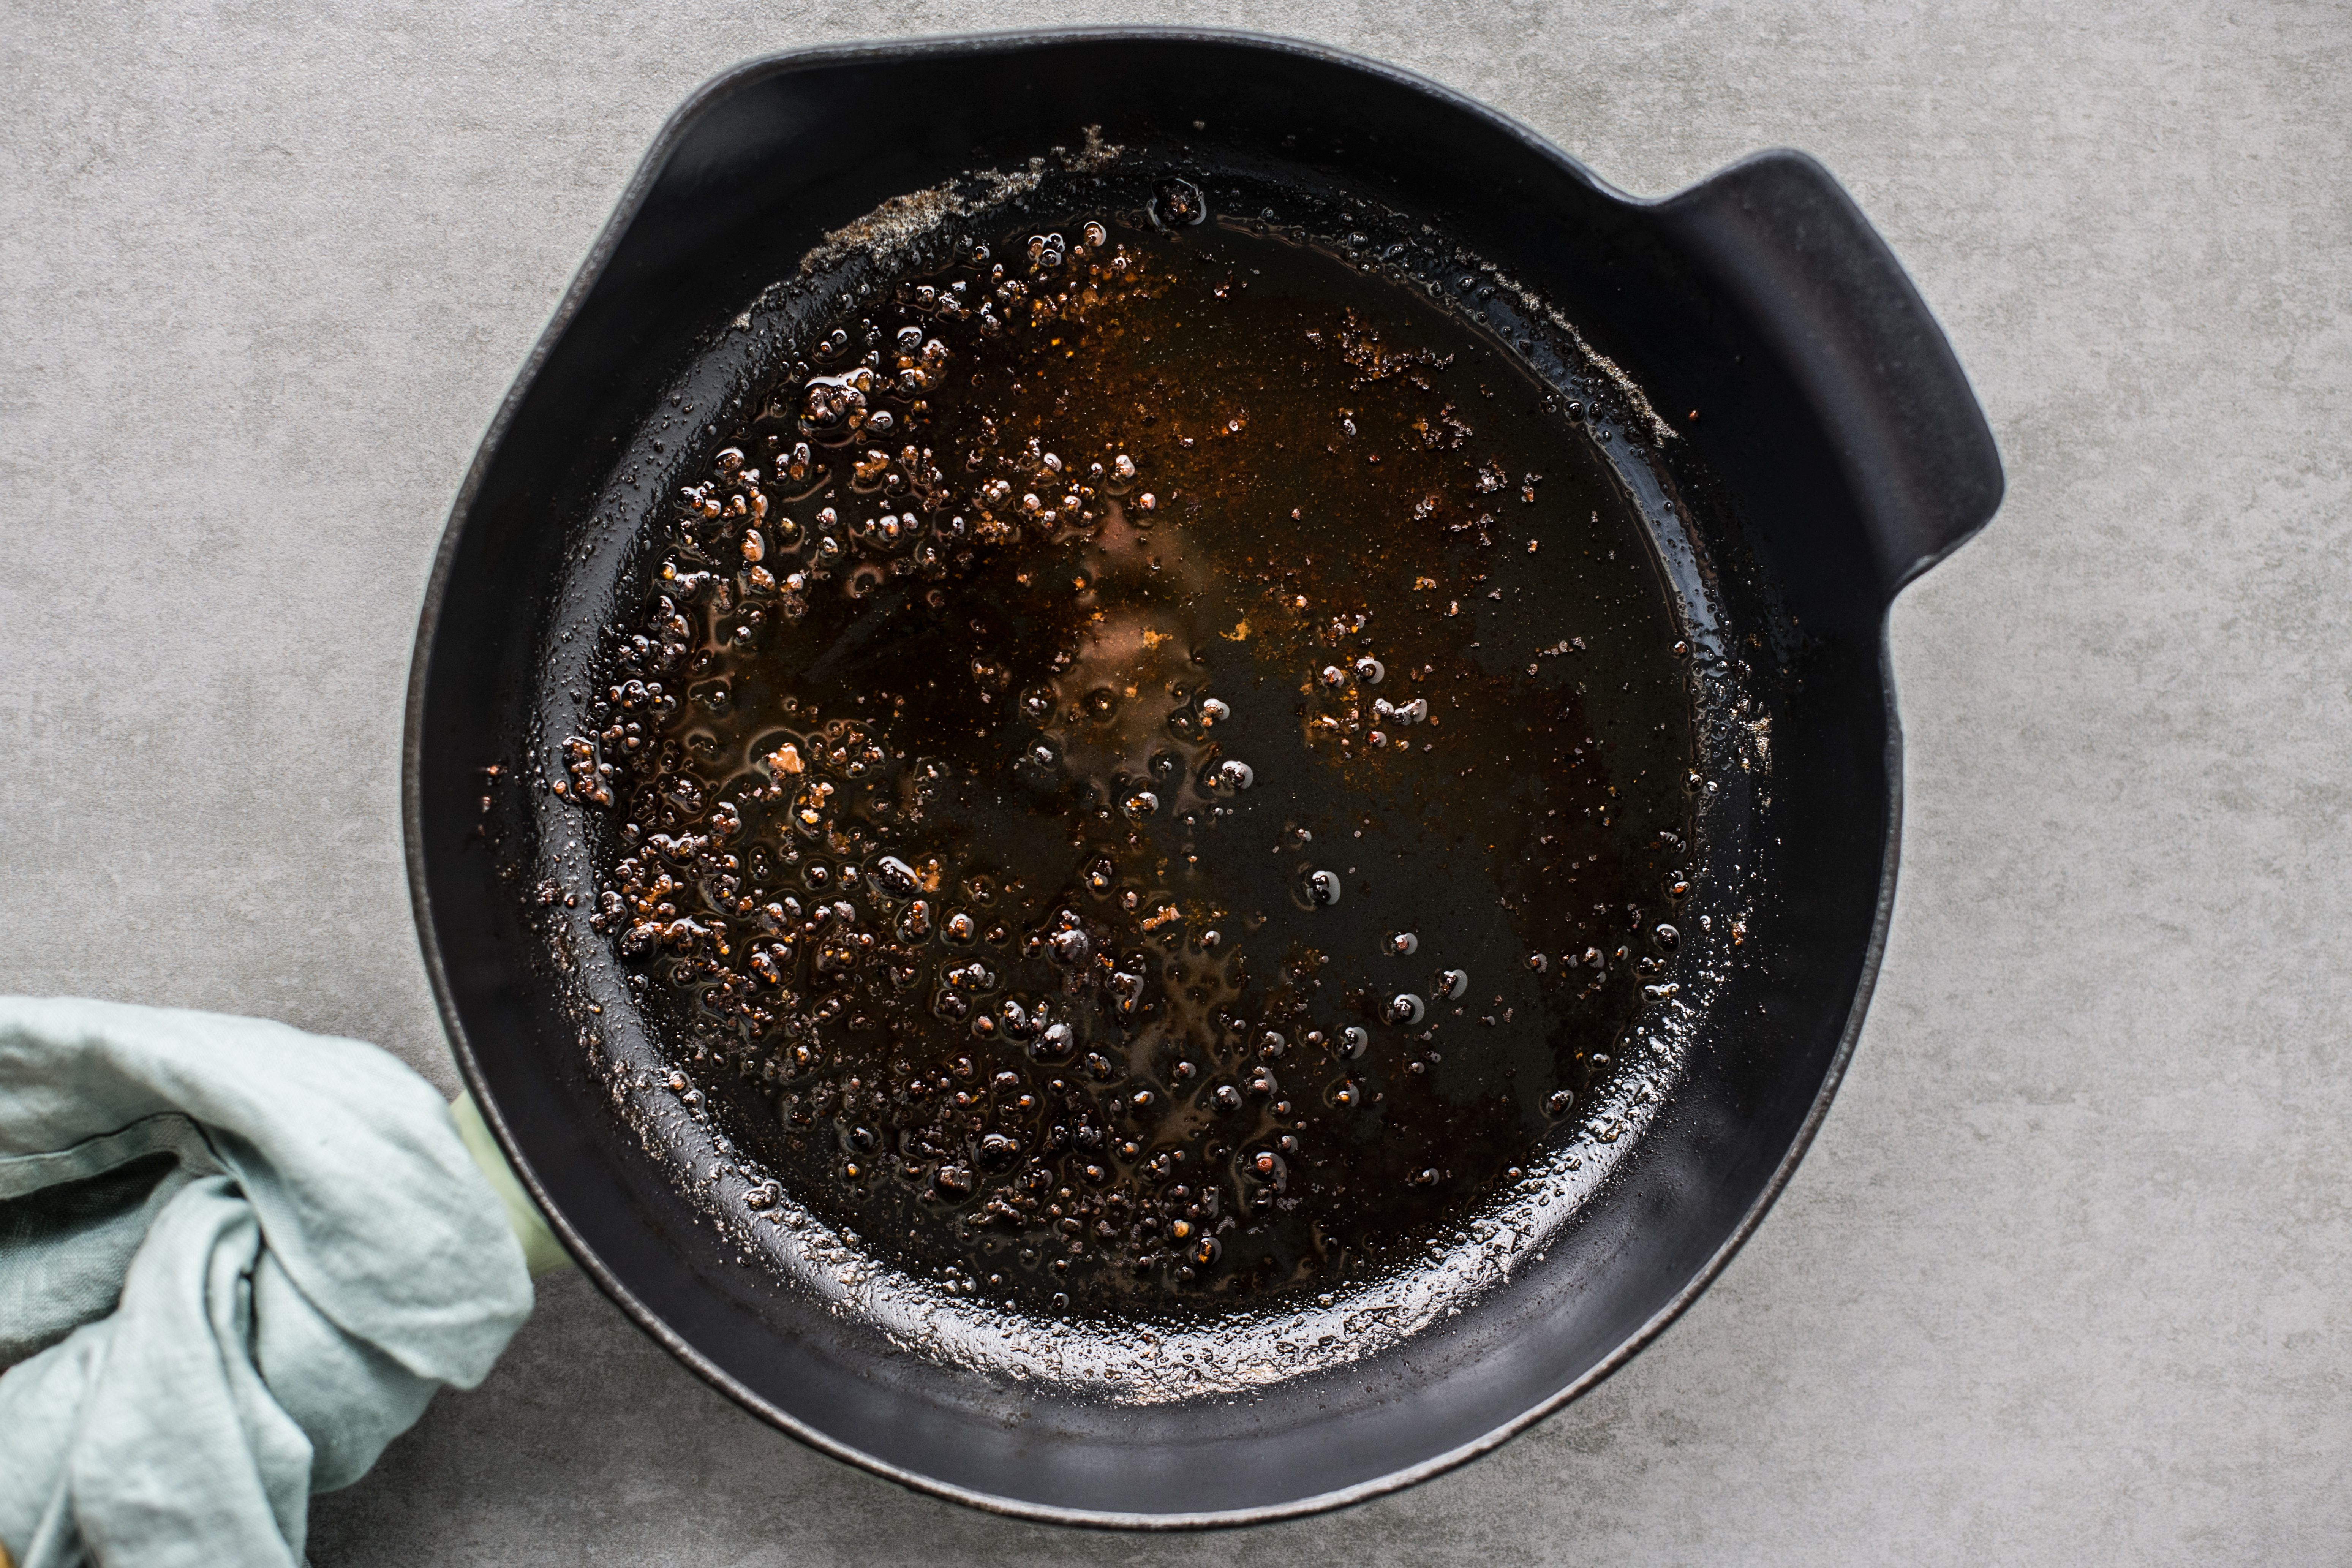 Pan with drippings and fat